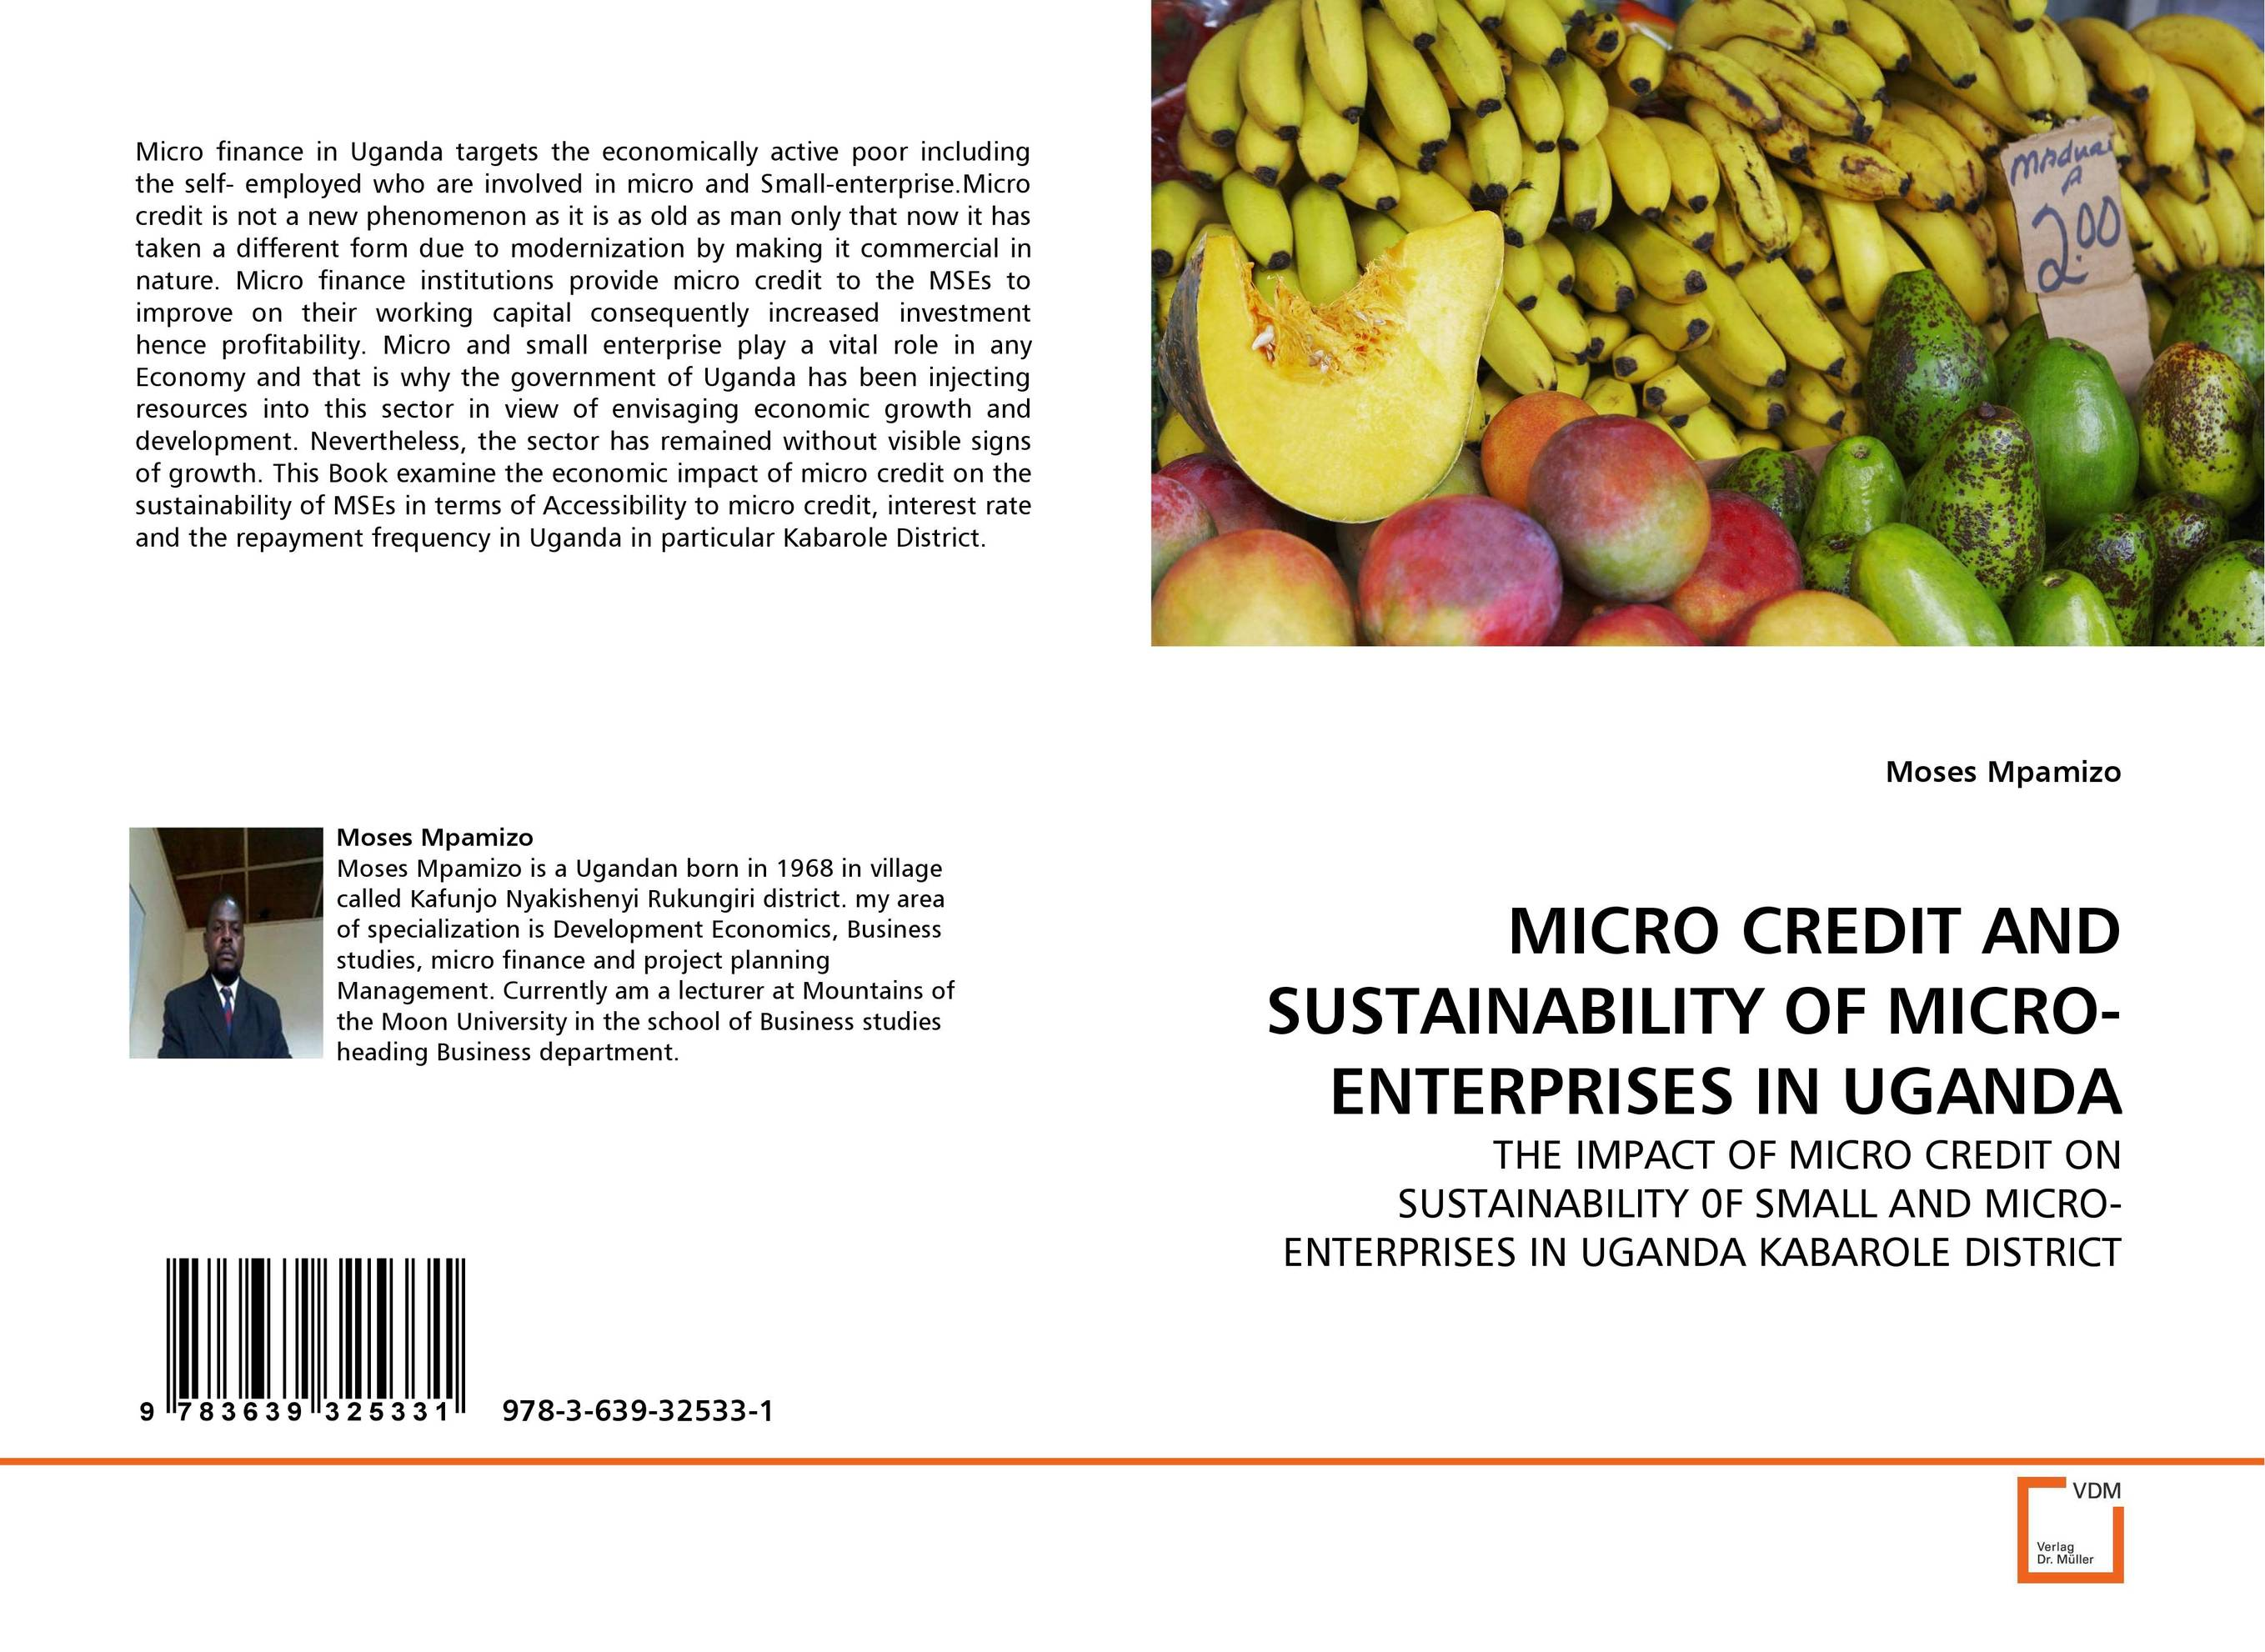 MICRO CREDIT AND SUSTAINABILITY OF MICRO-ENTERPRISES IN UGANDA